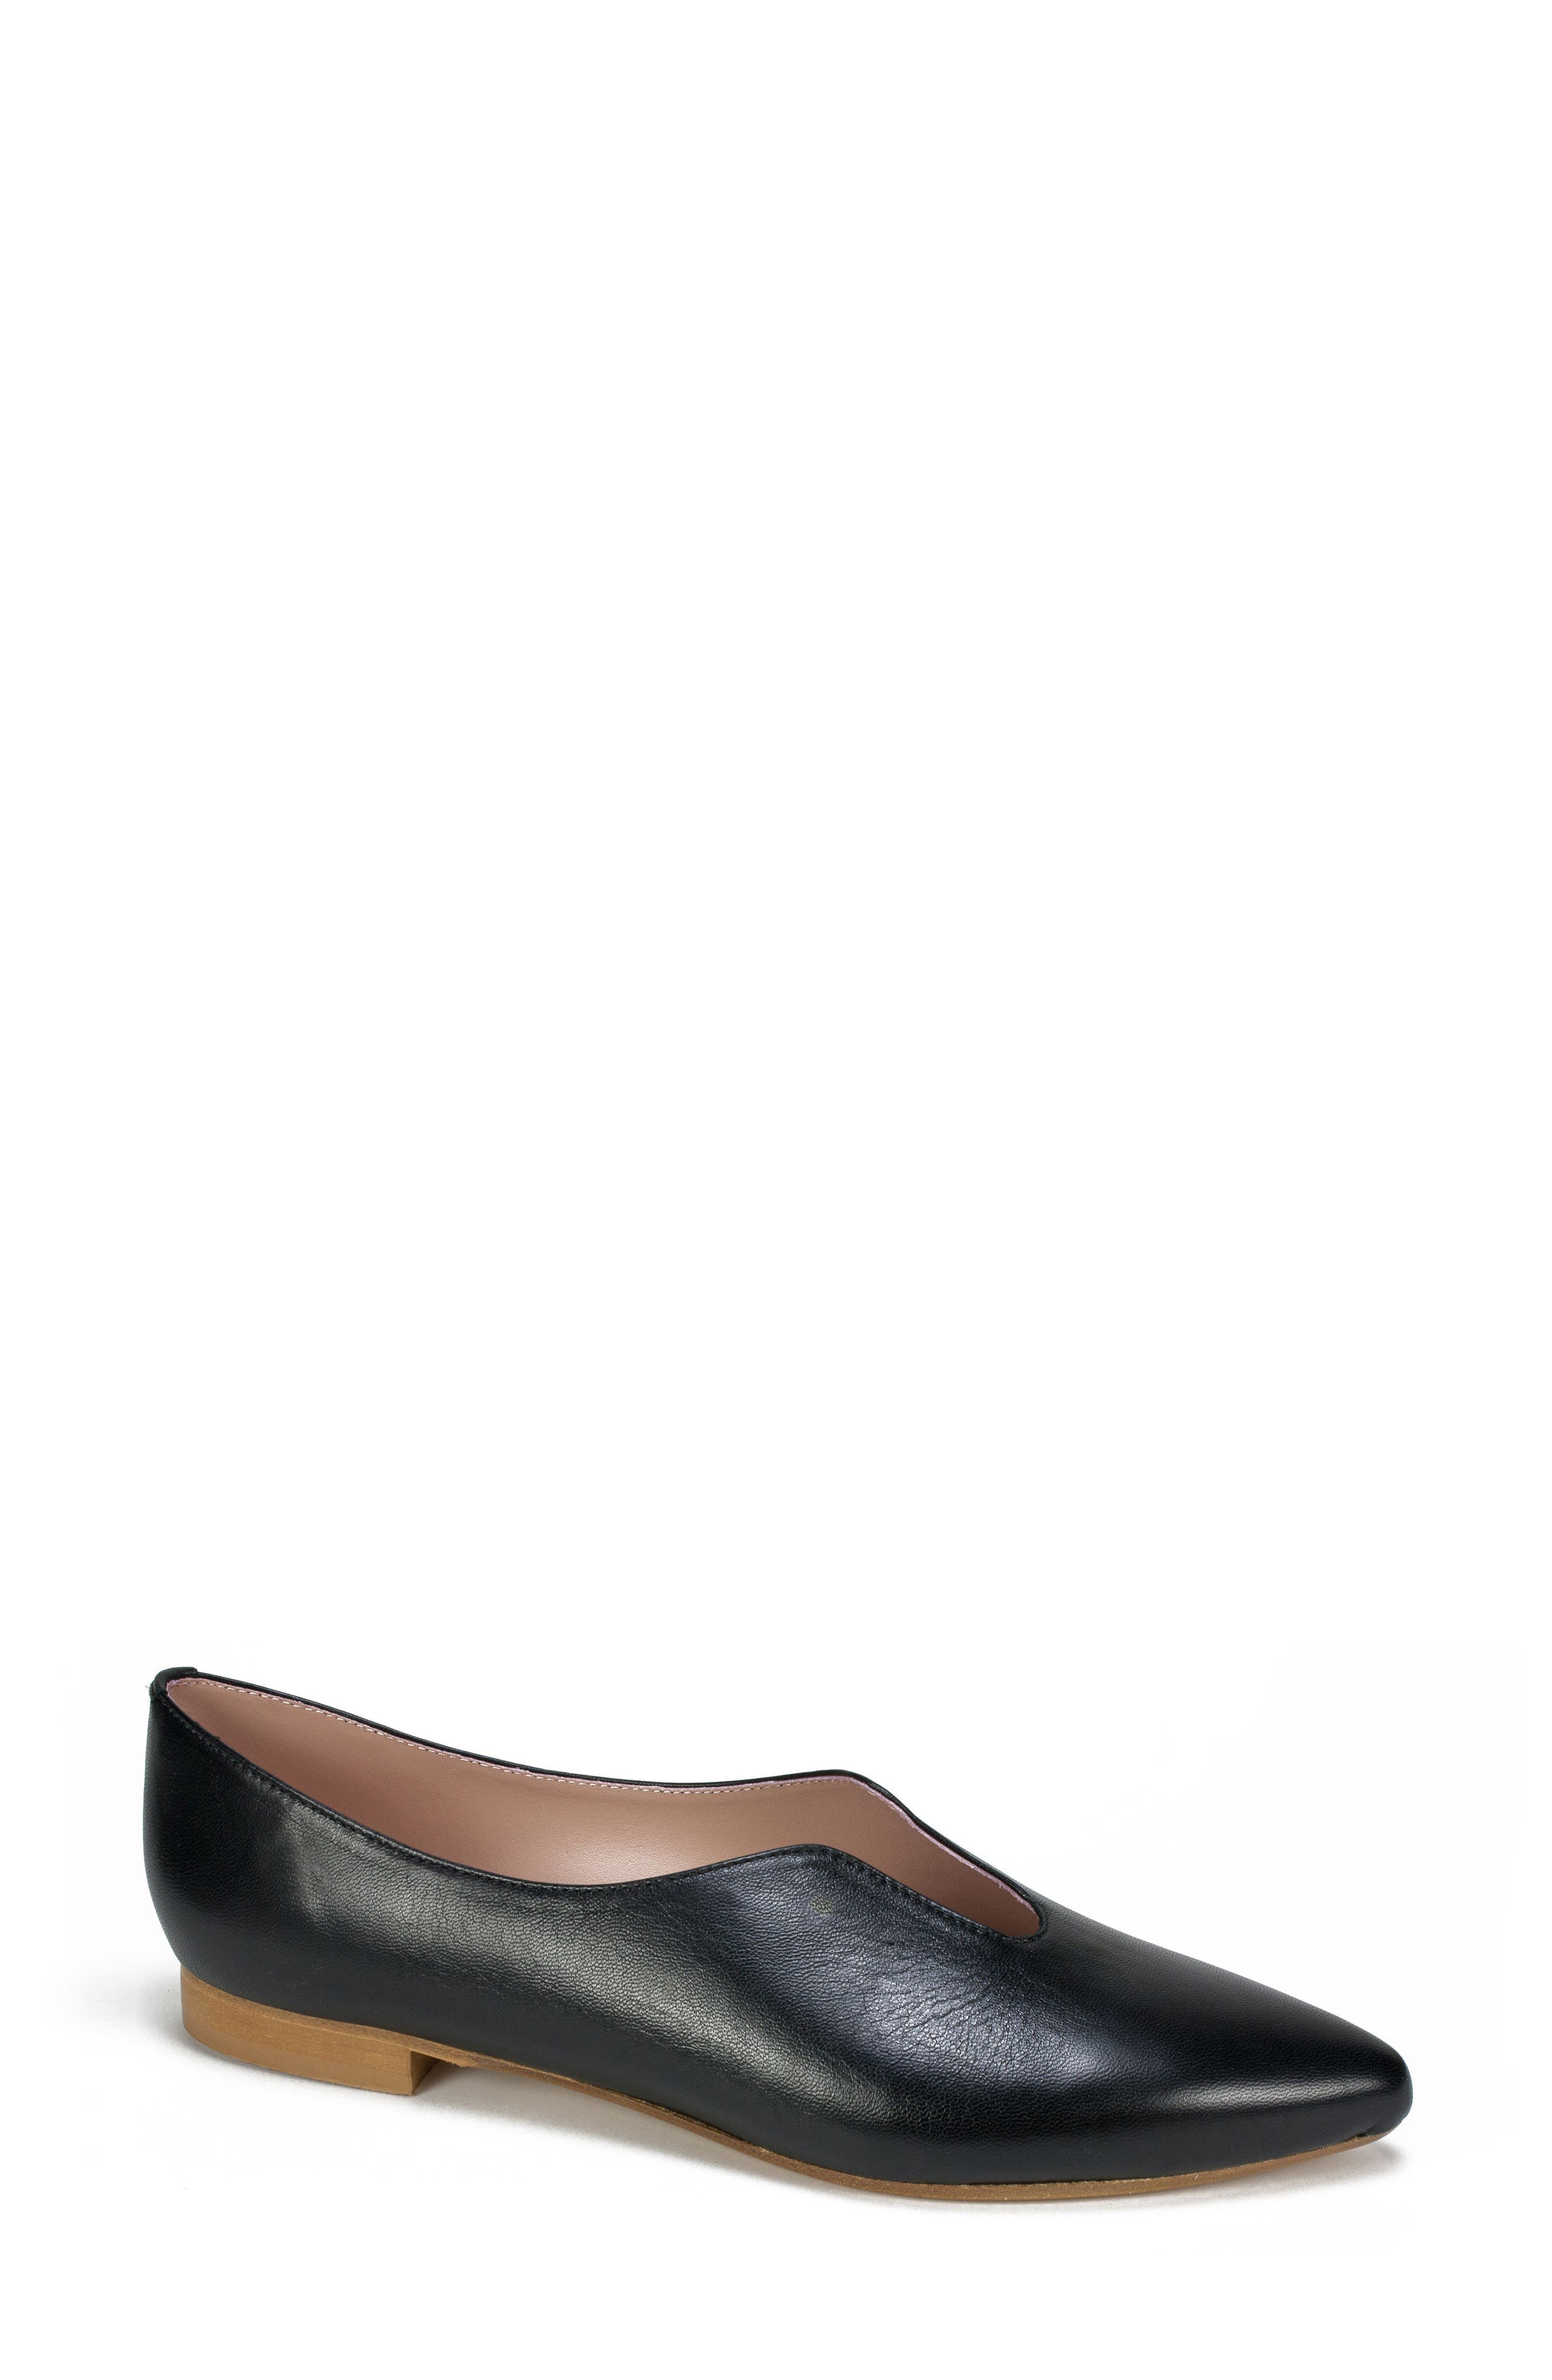 by White Mountain Kade Flat,                             Main thumbnail 1, color,                             BLACK LEATHER